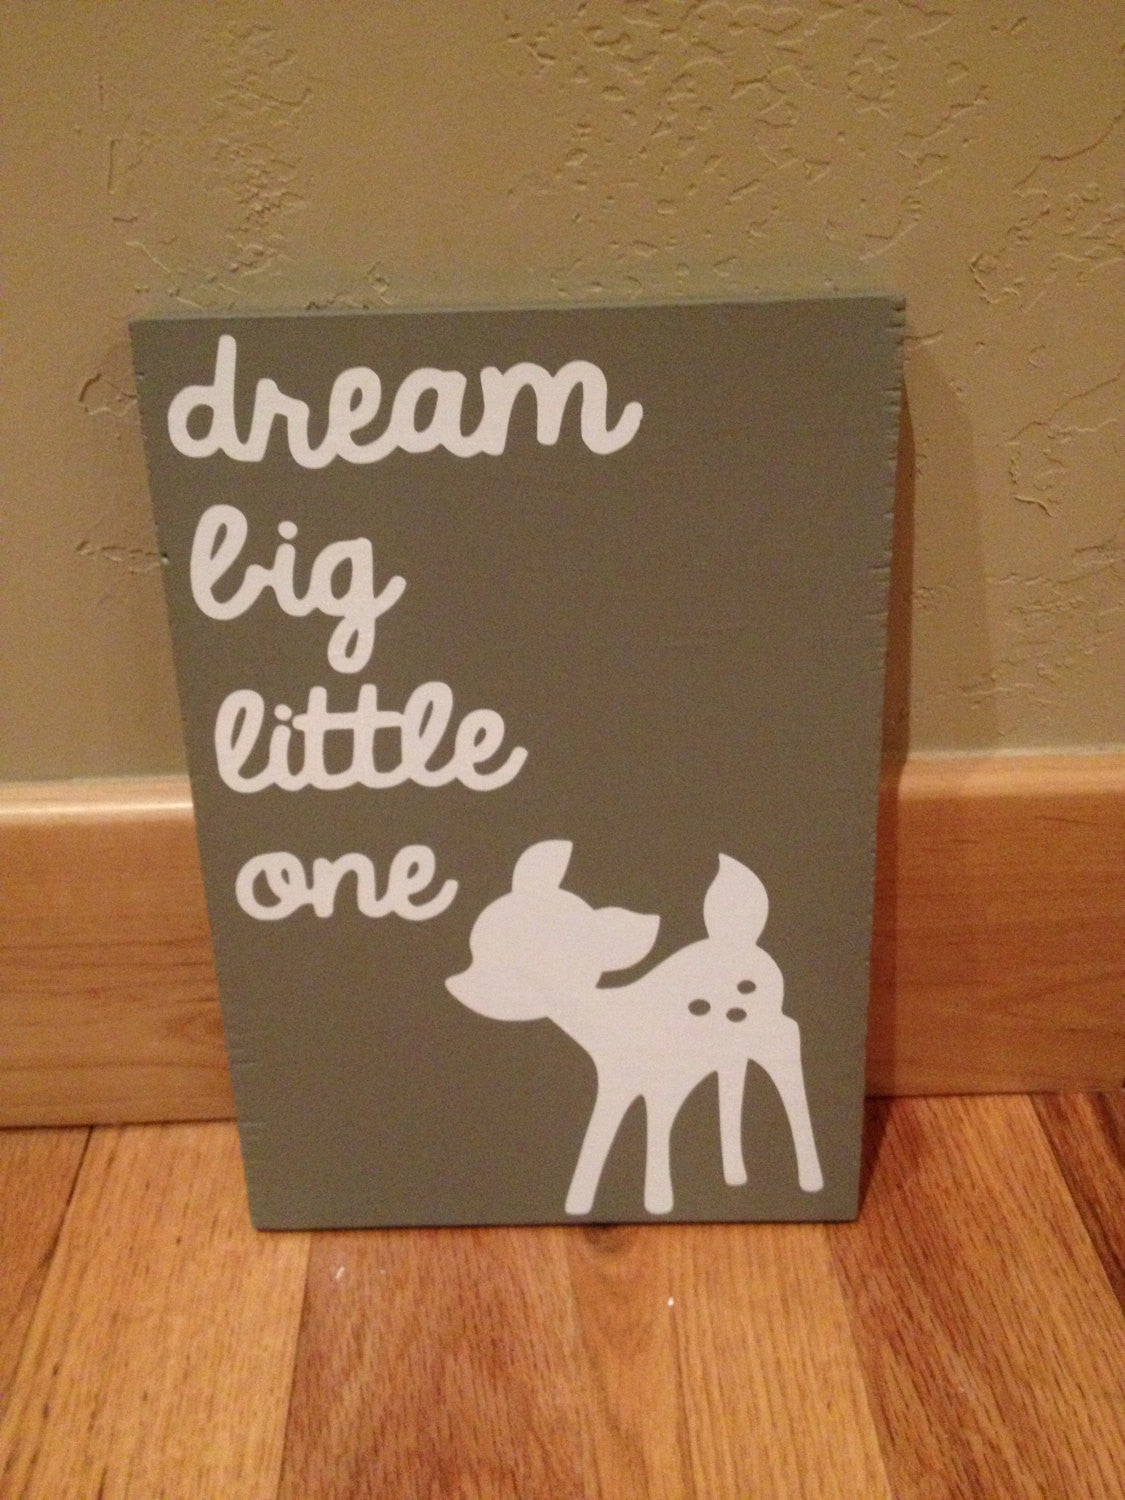 Dream Big Little One Baby Nursery wooden wall sign 8x12""